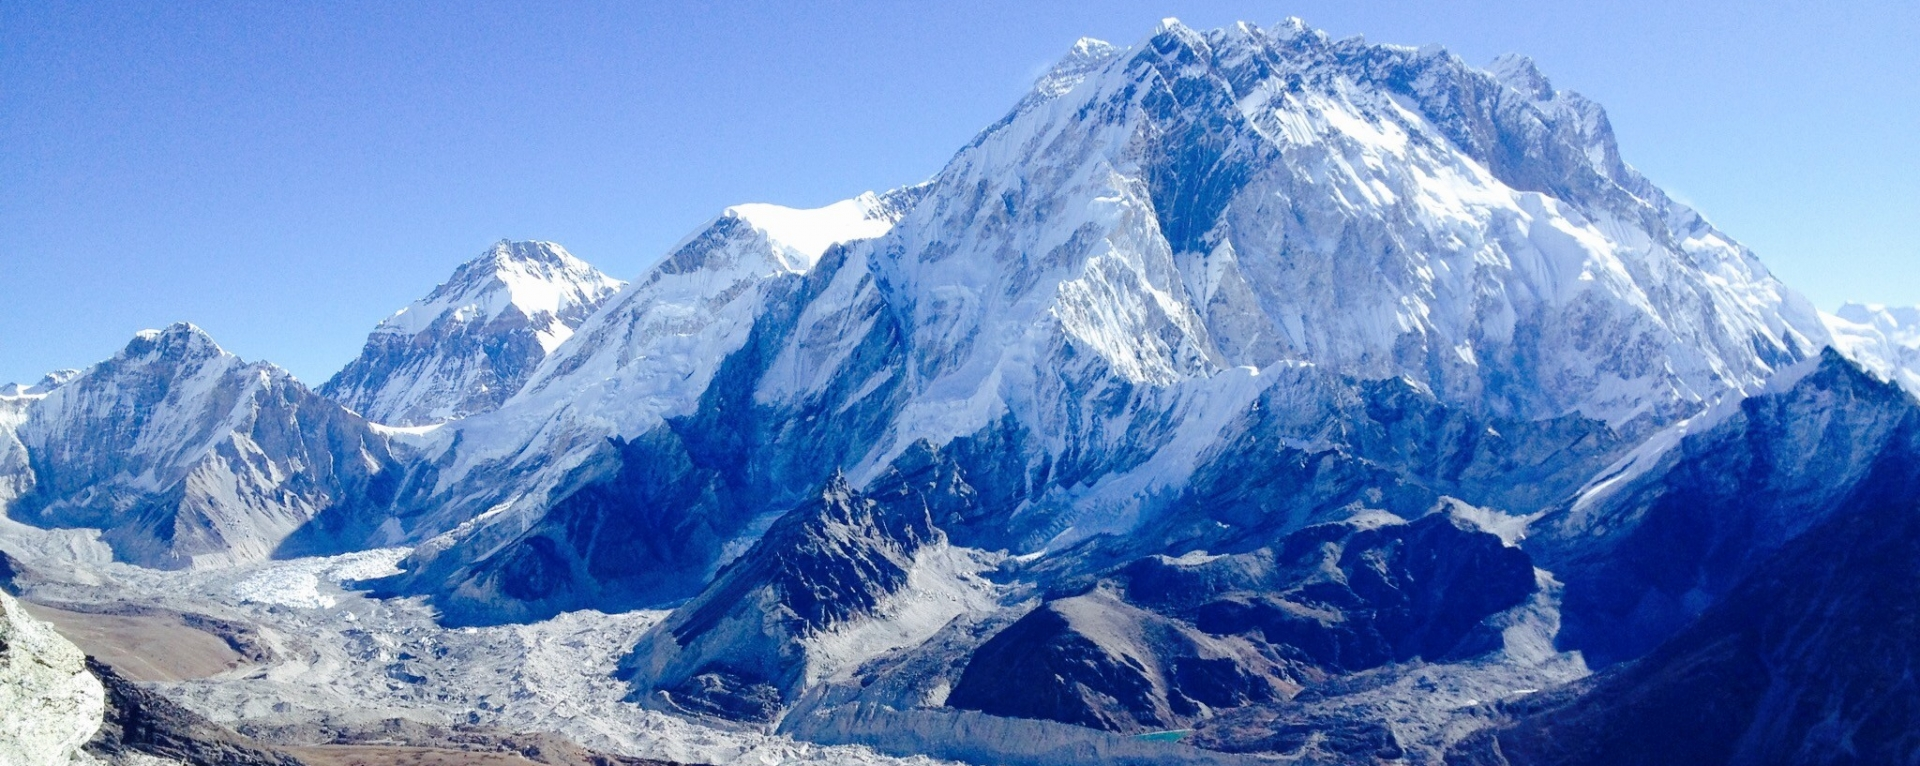 Mt. Everest, Nuptse ridges and Khumbu glacier view from Lobuche peak